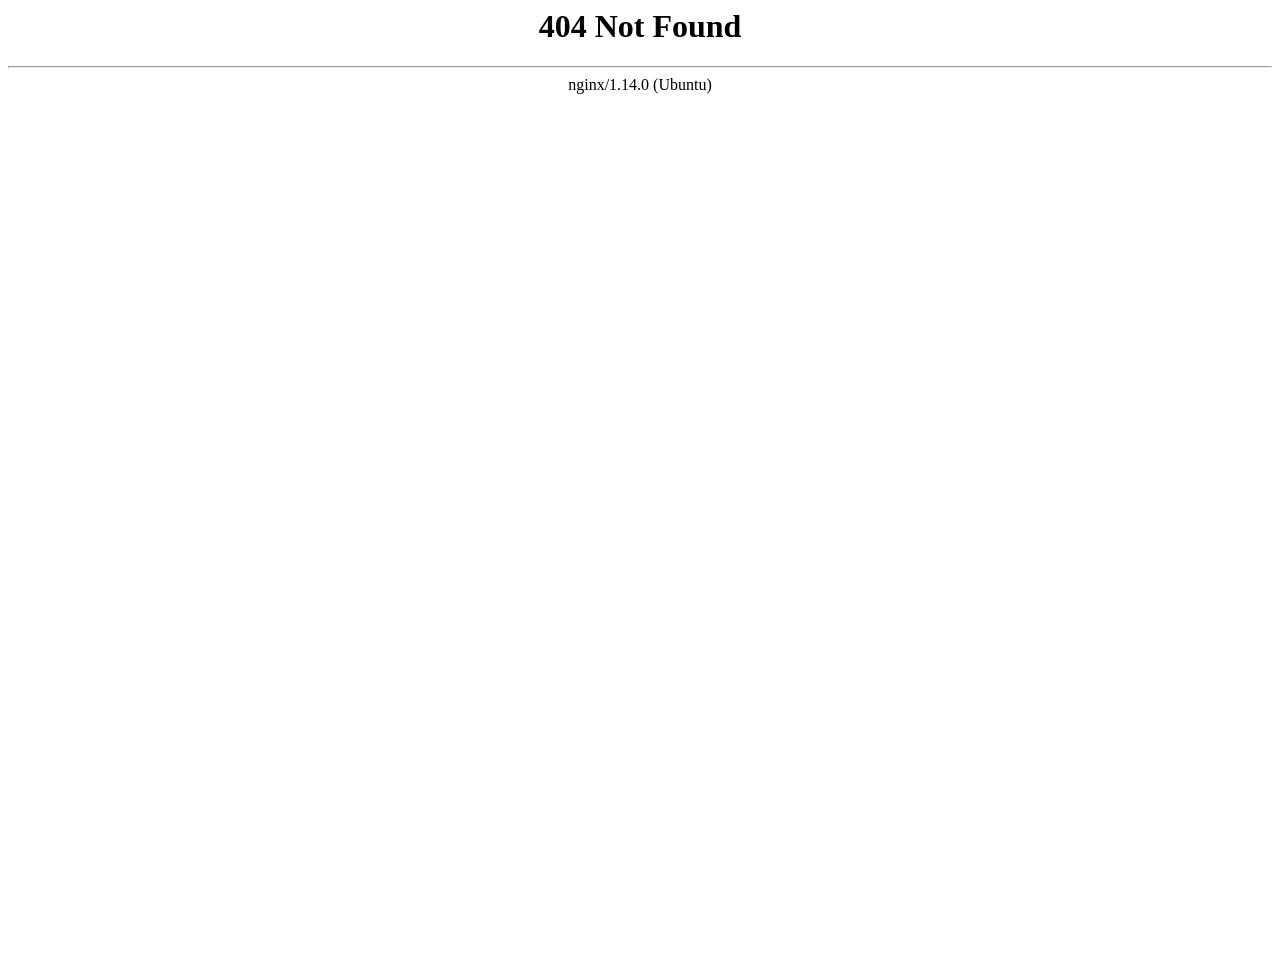 allencountydetention.com